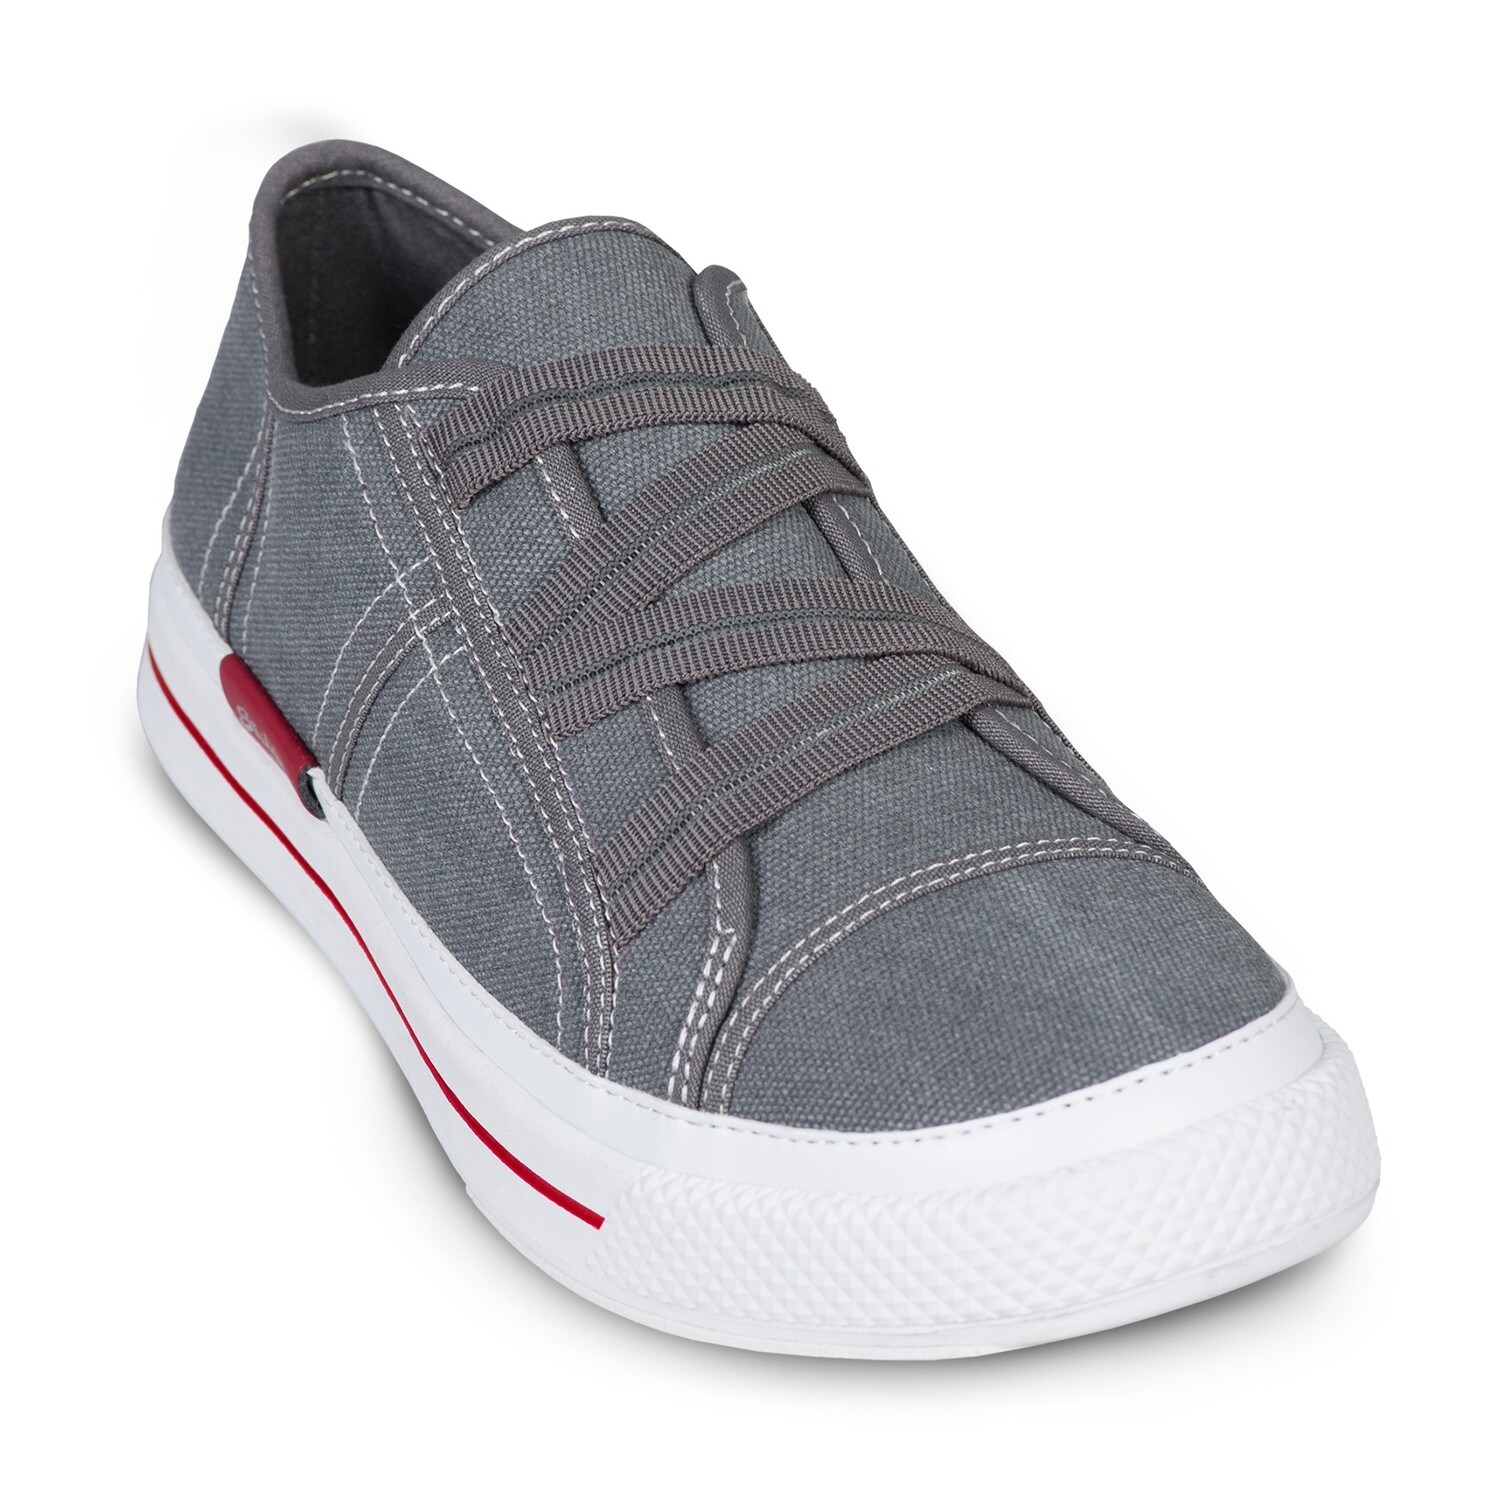 KR Strikeforce Cali Grey Womens Bowling Shoes